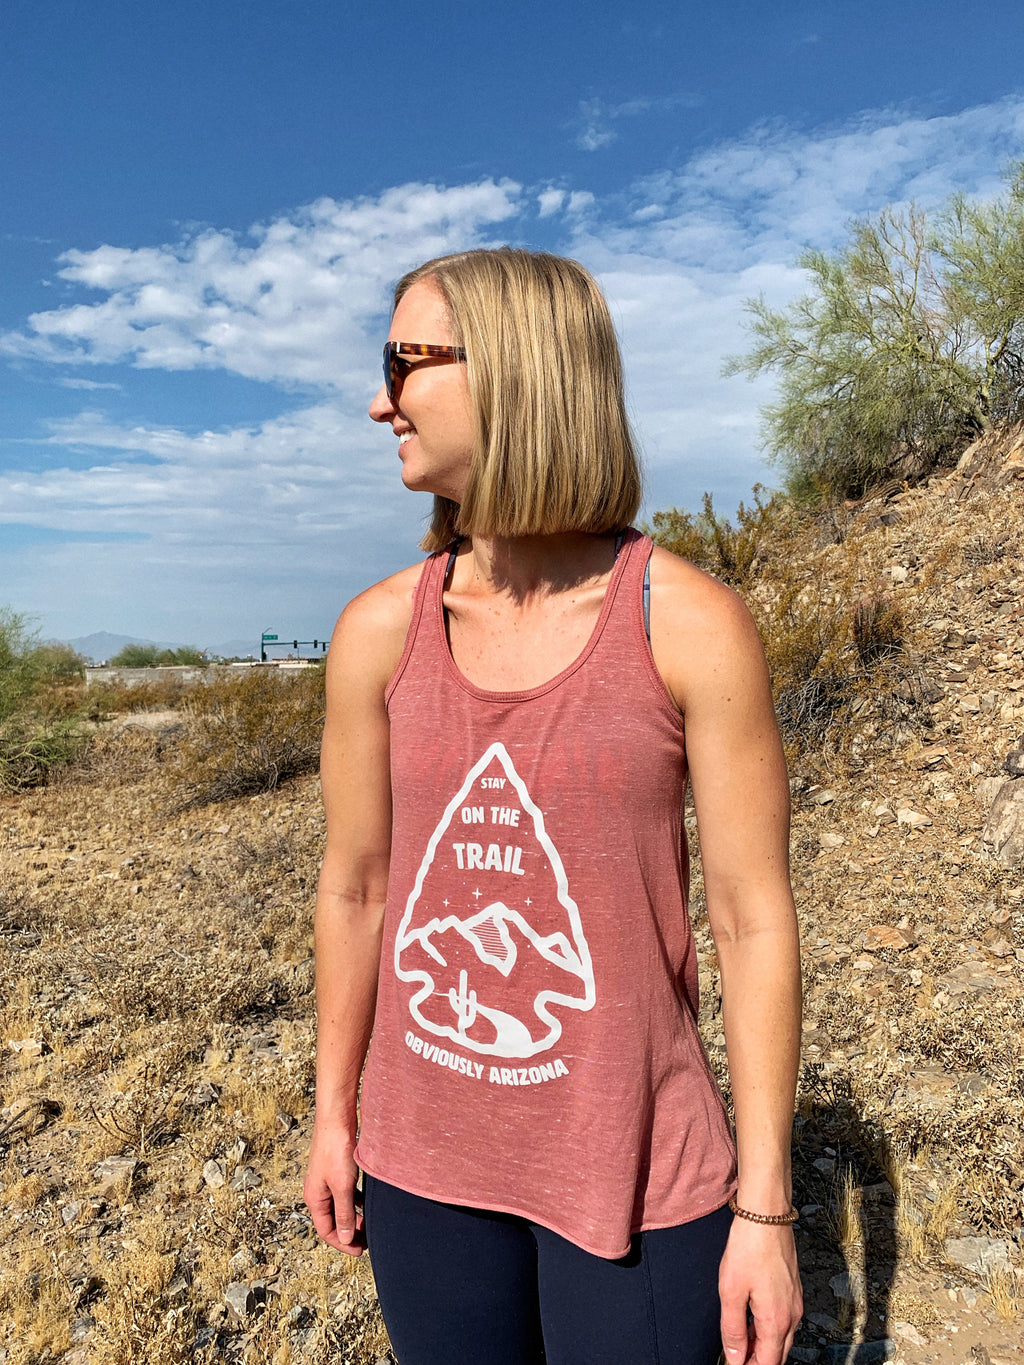 Stay On The Trail - Women's Racerback Tank - Marble Mauve - Obviously Arizona